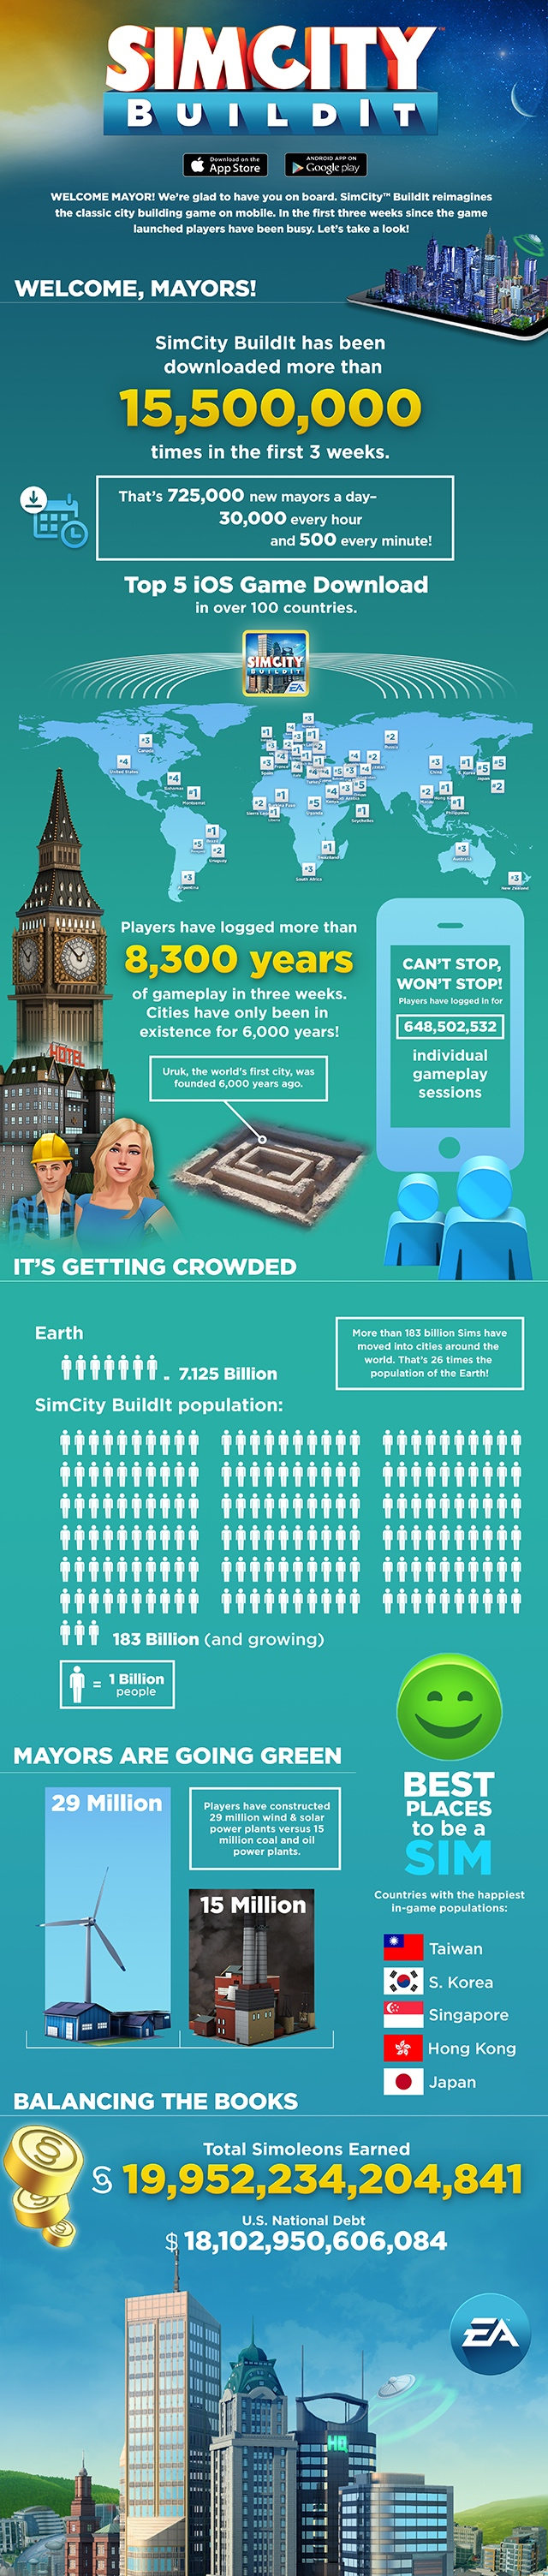 SimCity-BuildIt-Infographic